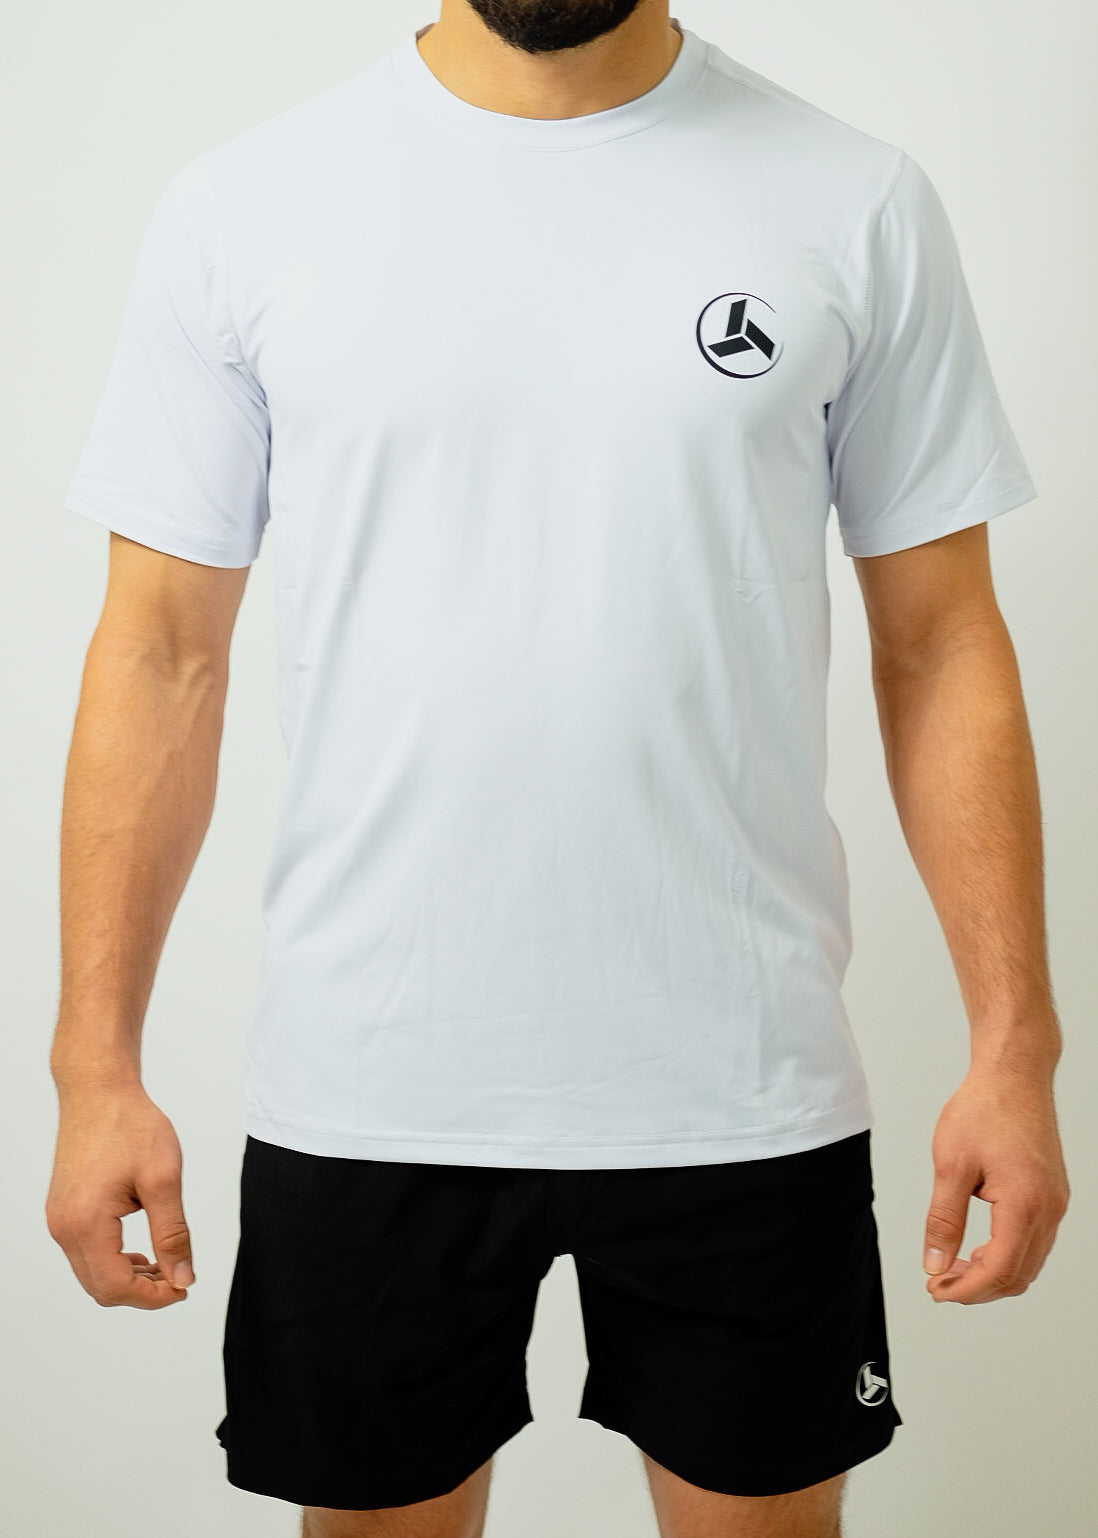 Men's Dry-Fit Moisture Wicking Active Athletic Performance T-Shirt